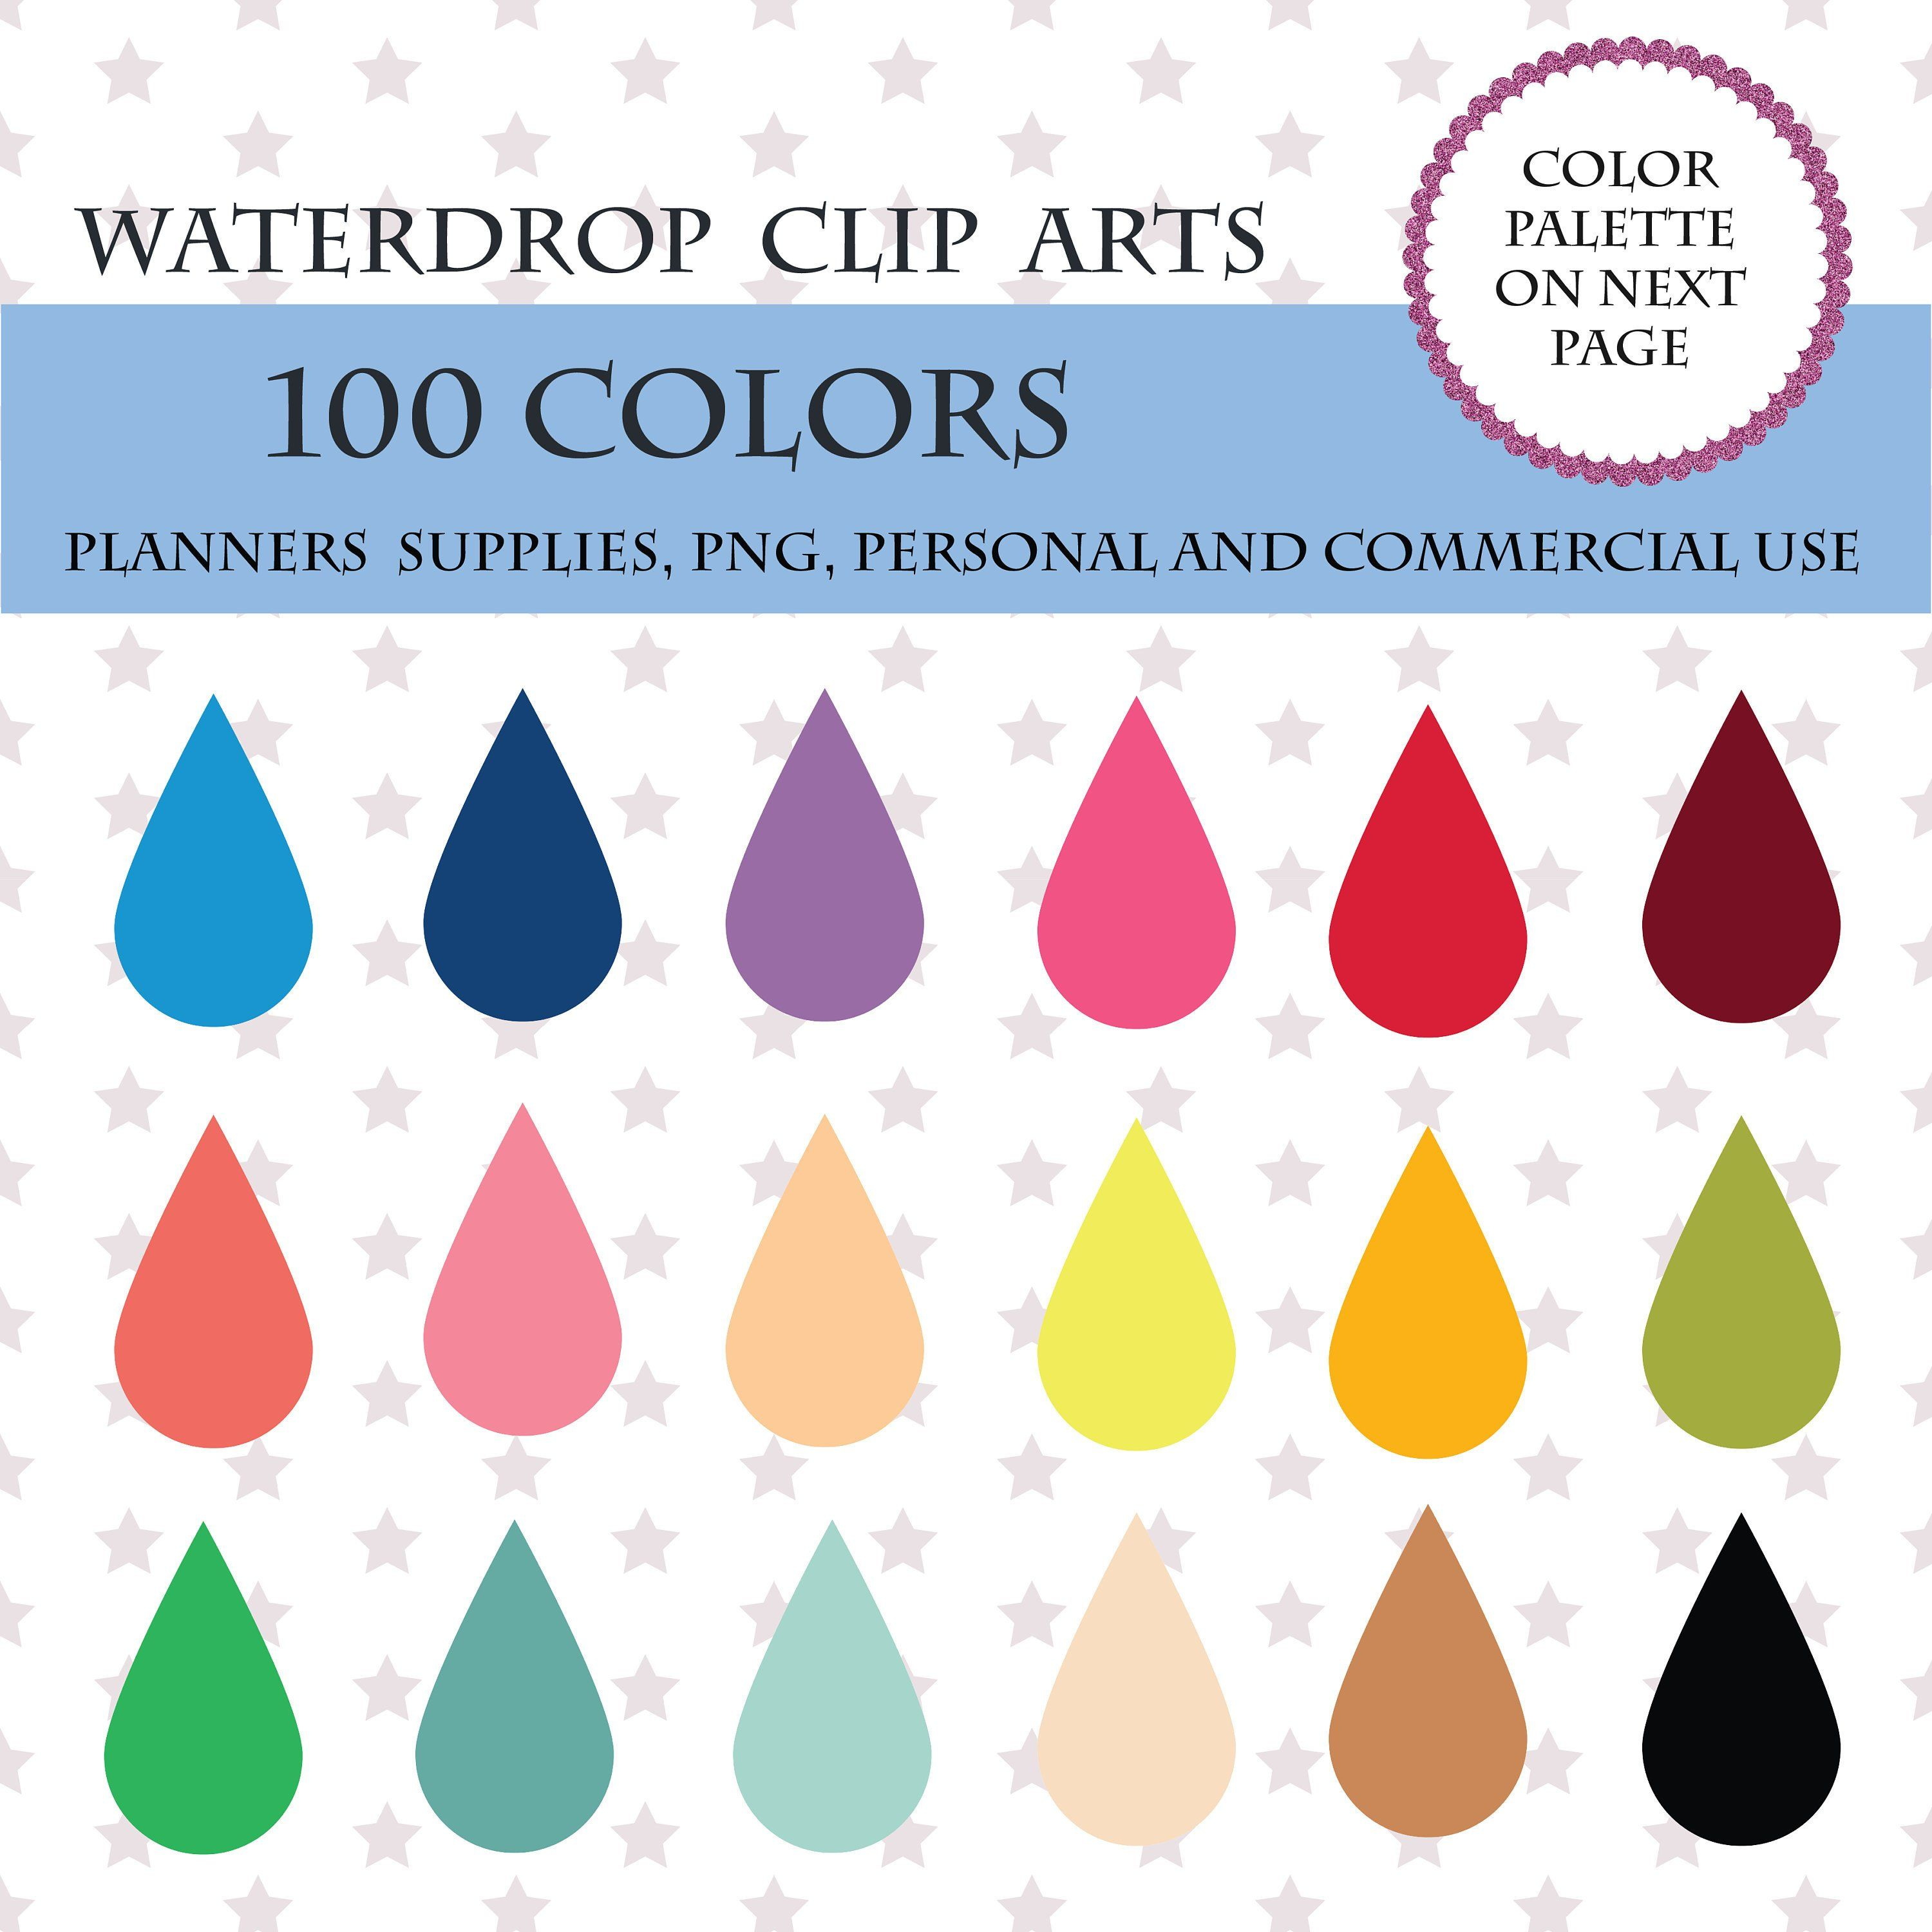 medium resolution of 100 teardrop cliparts raindrop clipart waterdrops clipart droplet icon cute rain drop colorful rainbow water drop clipart pl014